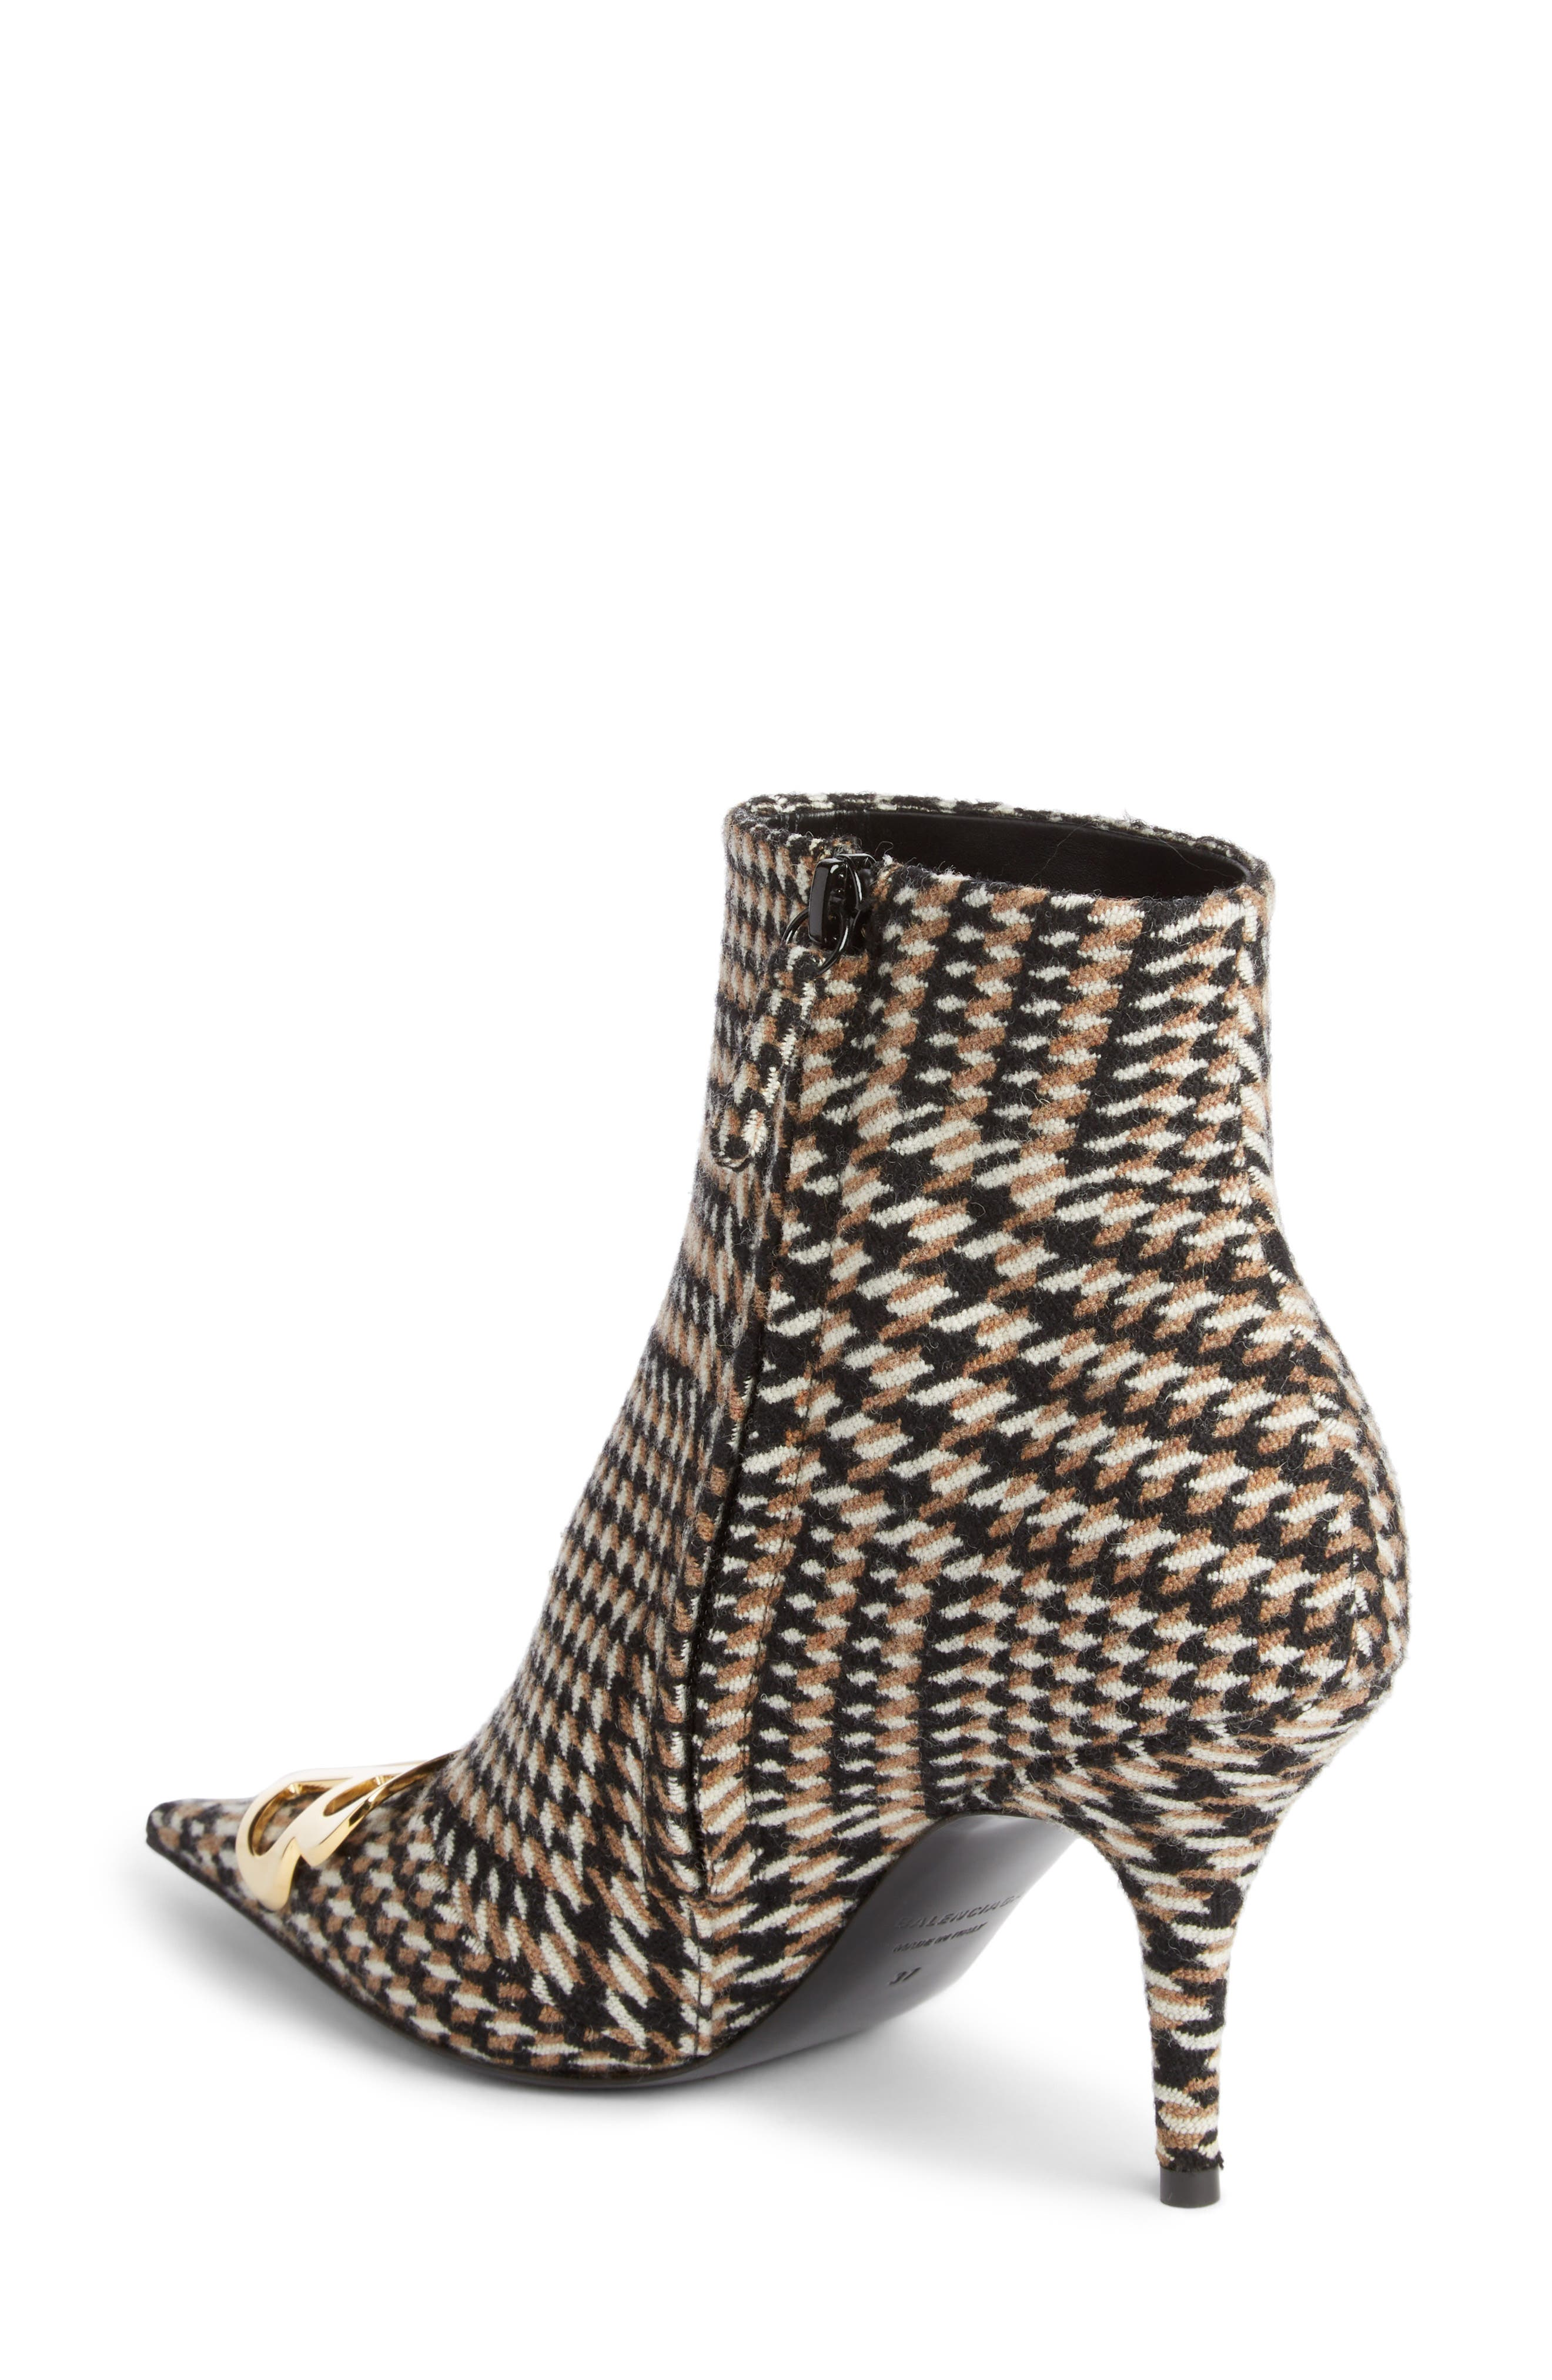 BB Pointy Toe Bootie,                             Alternate thumbnail 2, color,                             BLACK/ WHITE/ CAMEL